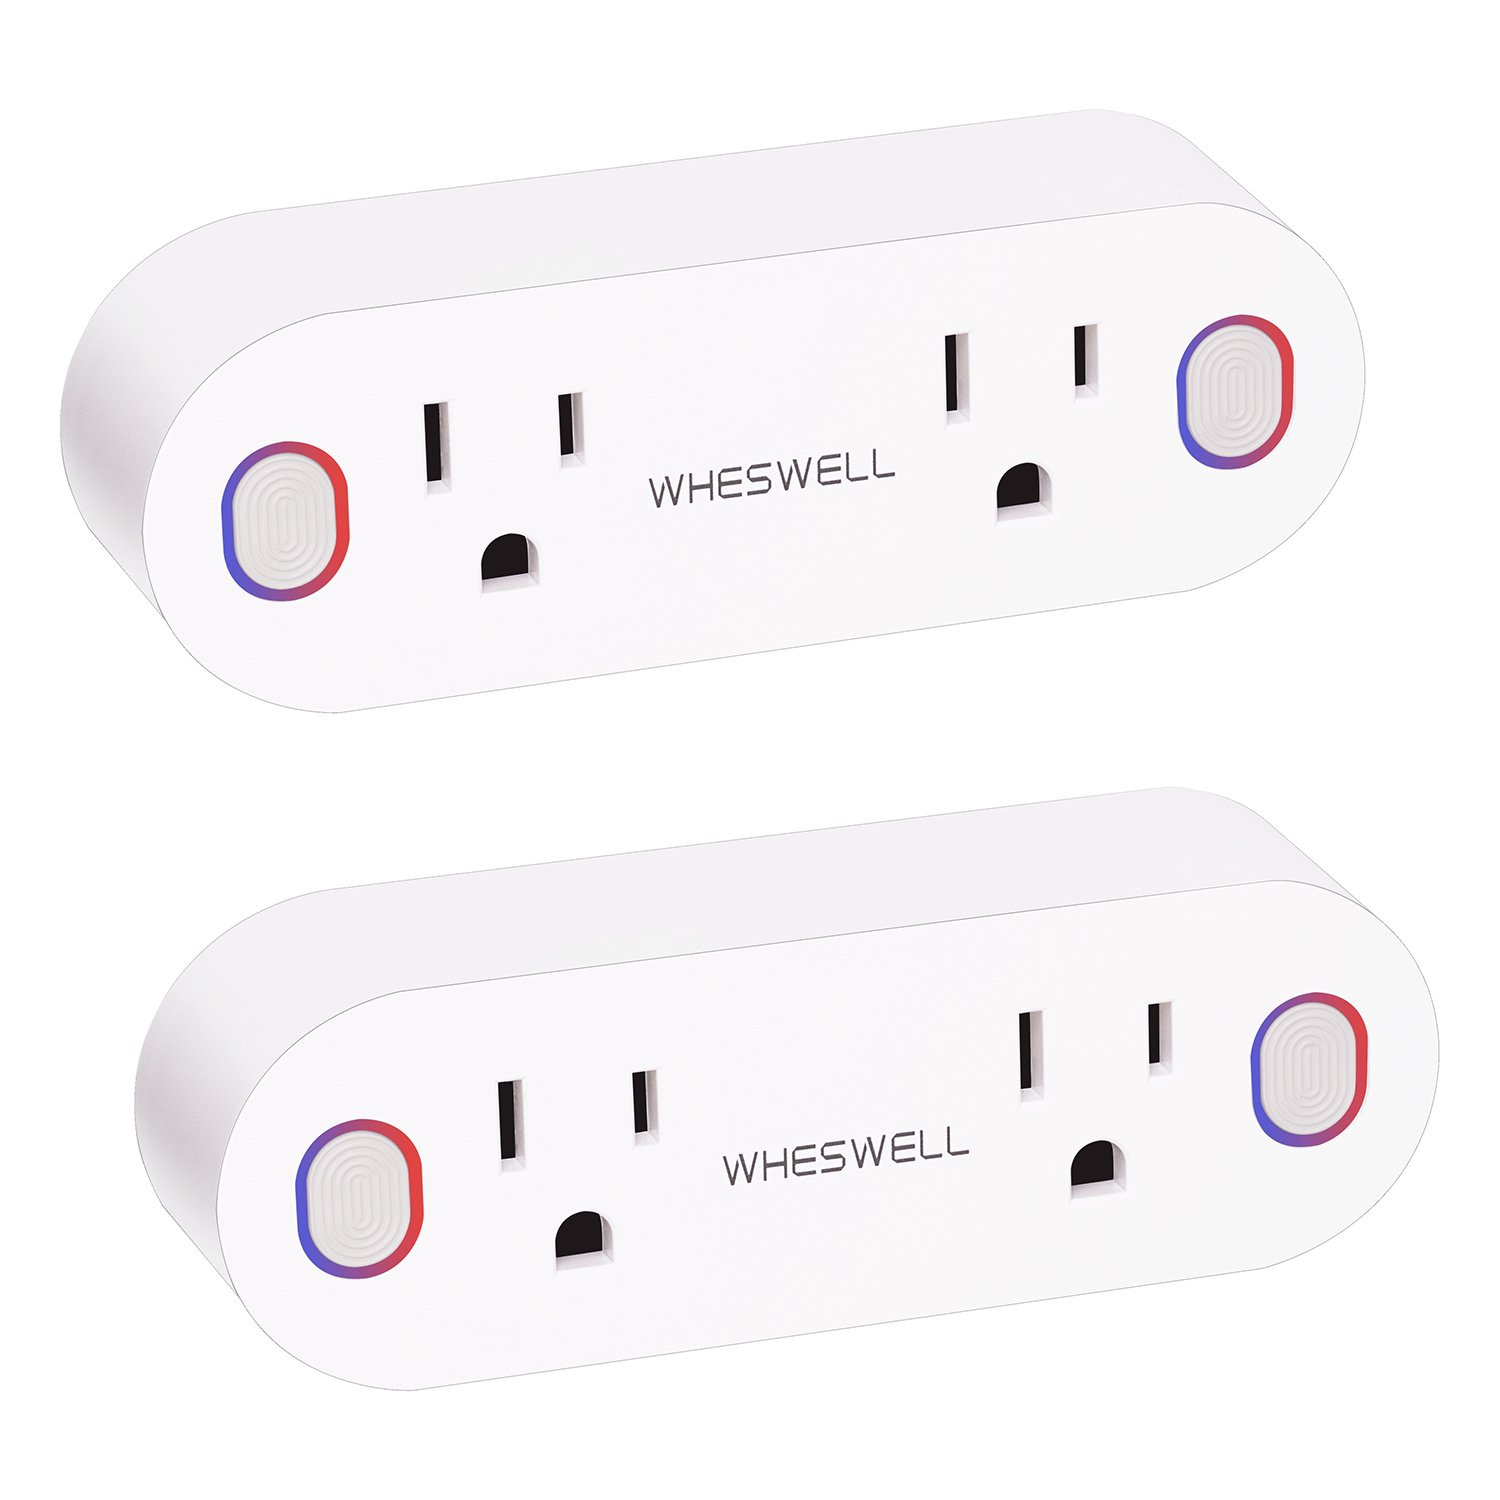 Smart Plug WiFi Mini Outlets Works with Amazon Alexa, Google Home and IFTTT, Wheswell SP1 Smart Sockets with Energy Monitoring and Timer, Dual Outlets Individual/Group Control (2 Pack) by WHESWELL